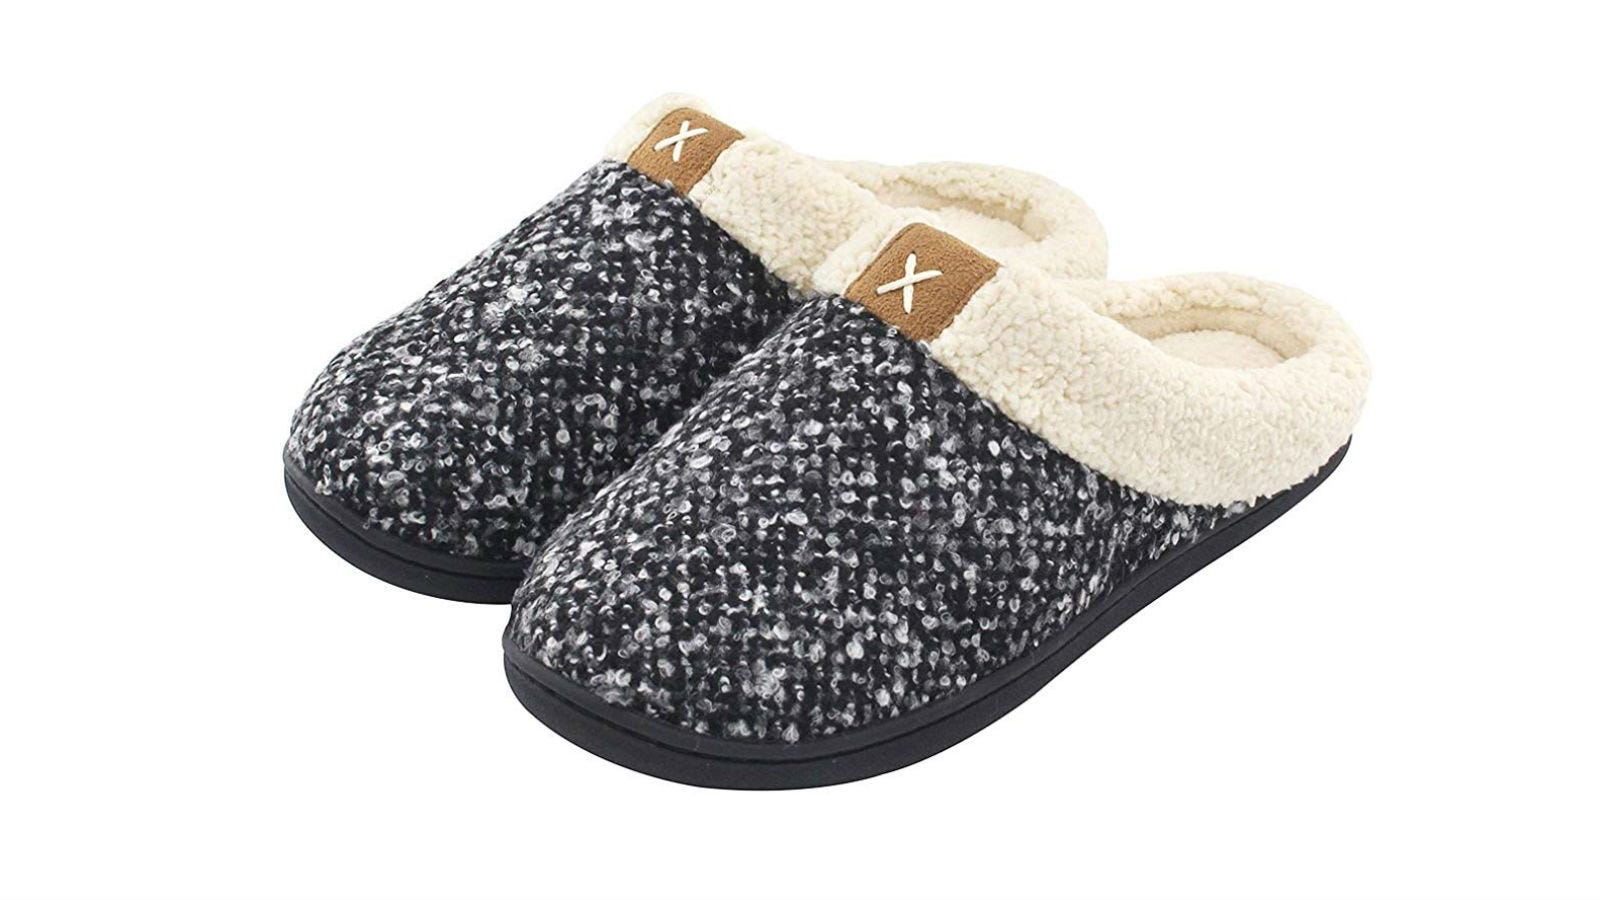 Ultraideas Womens Cozy Memory Foam Slippers